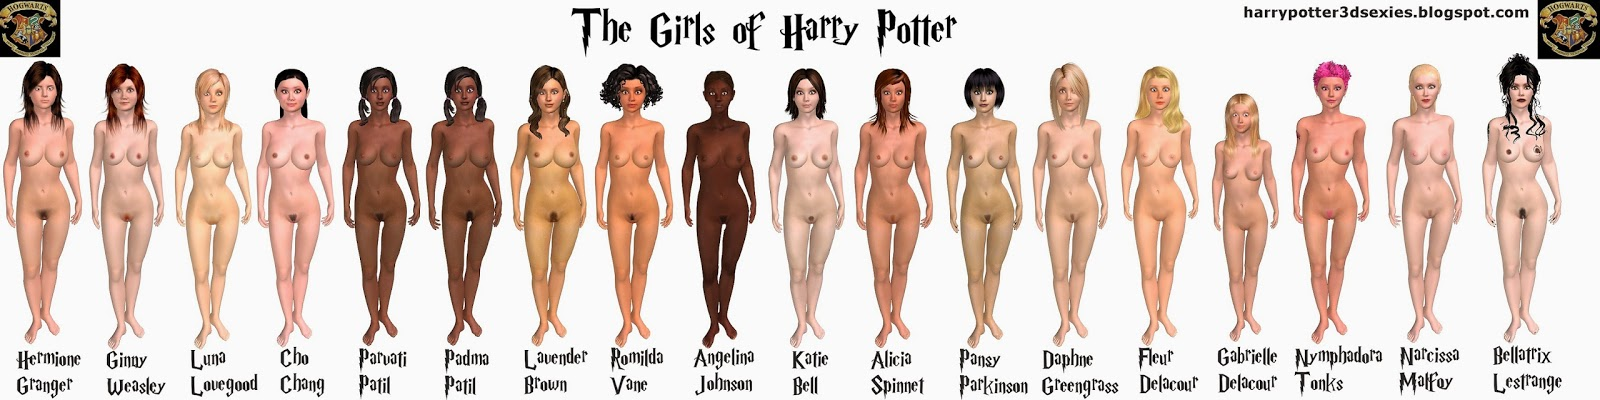 harry potter girls of hogwarts nude naked hermione granger emma watson porn sex 3d animated